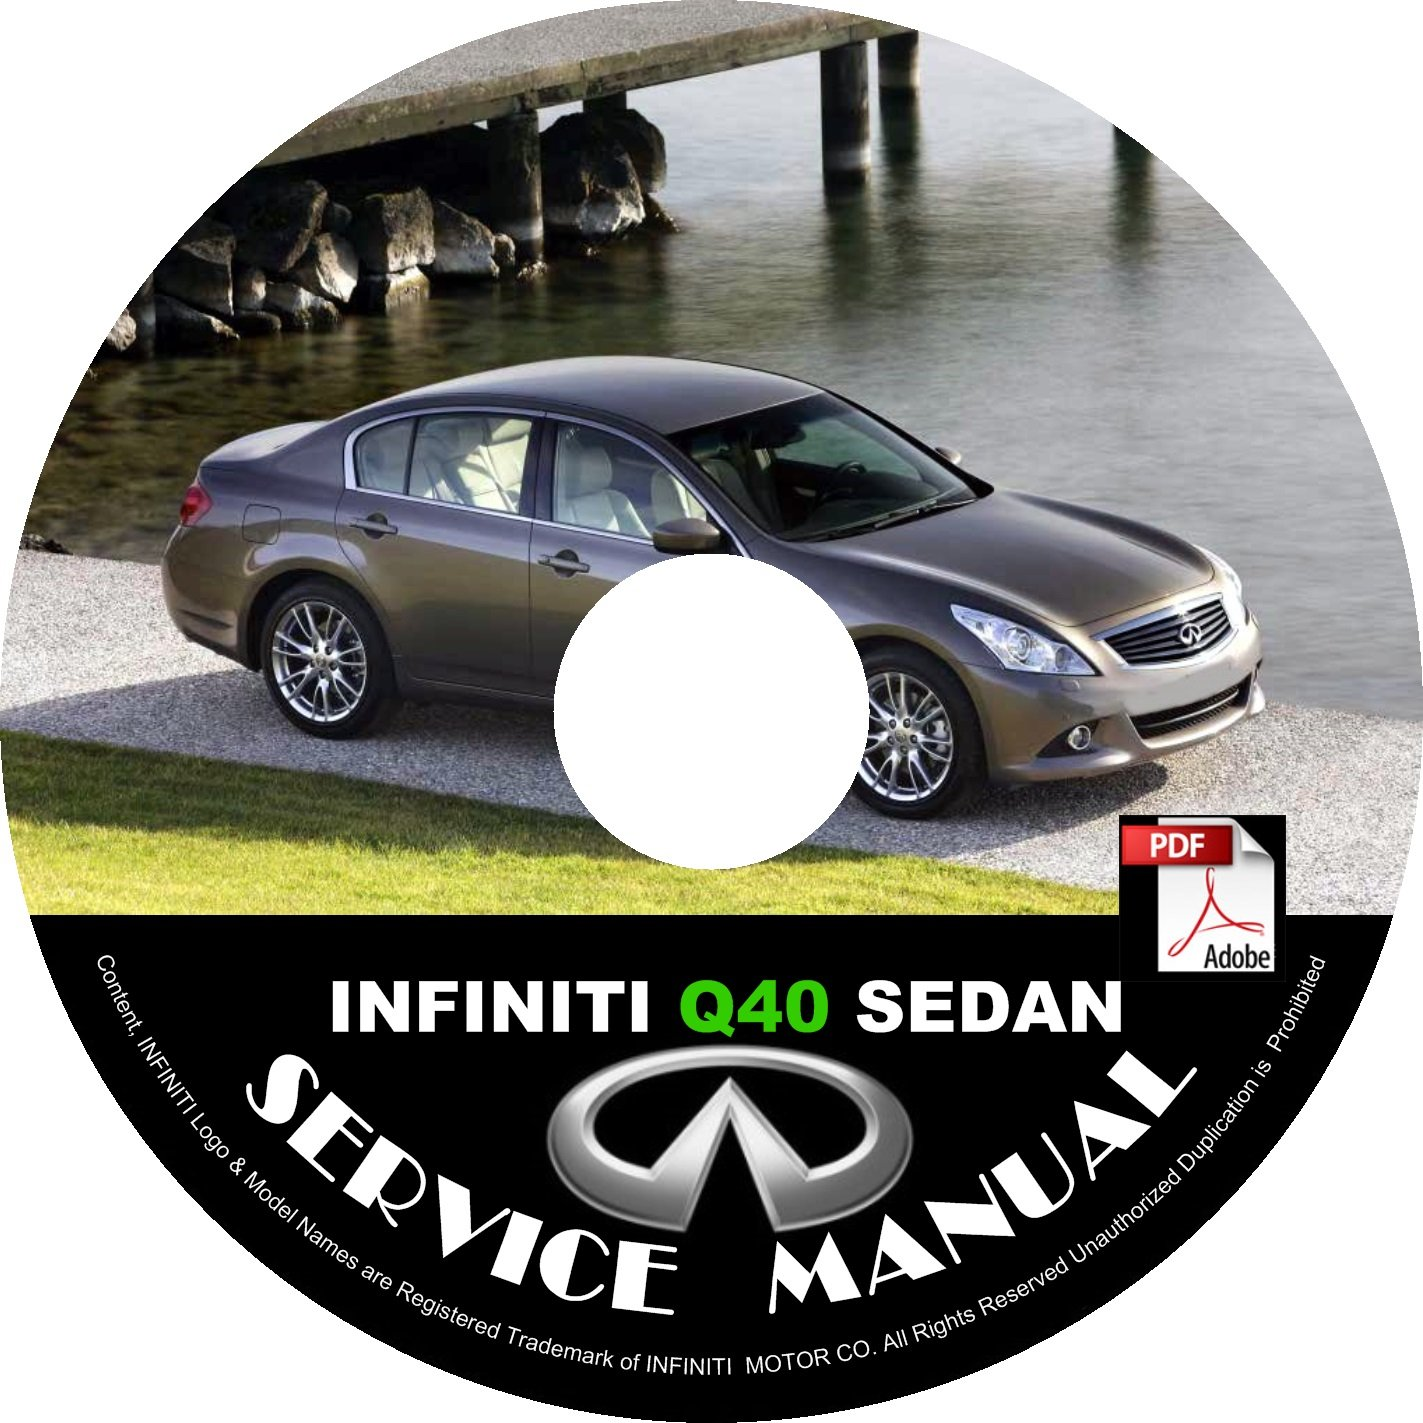 2015 Infiniti Q40 Sedan Service Repair Shop Manual on CD